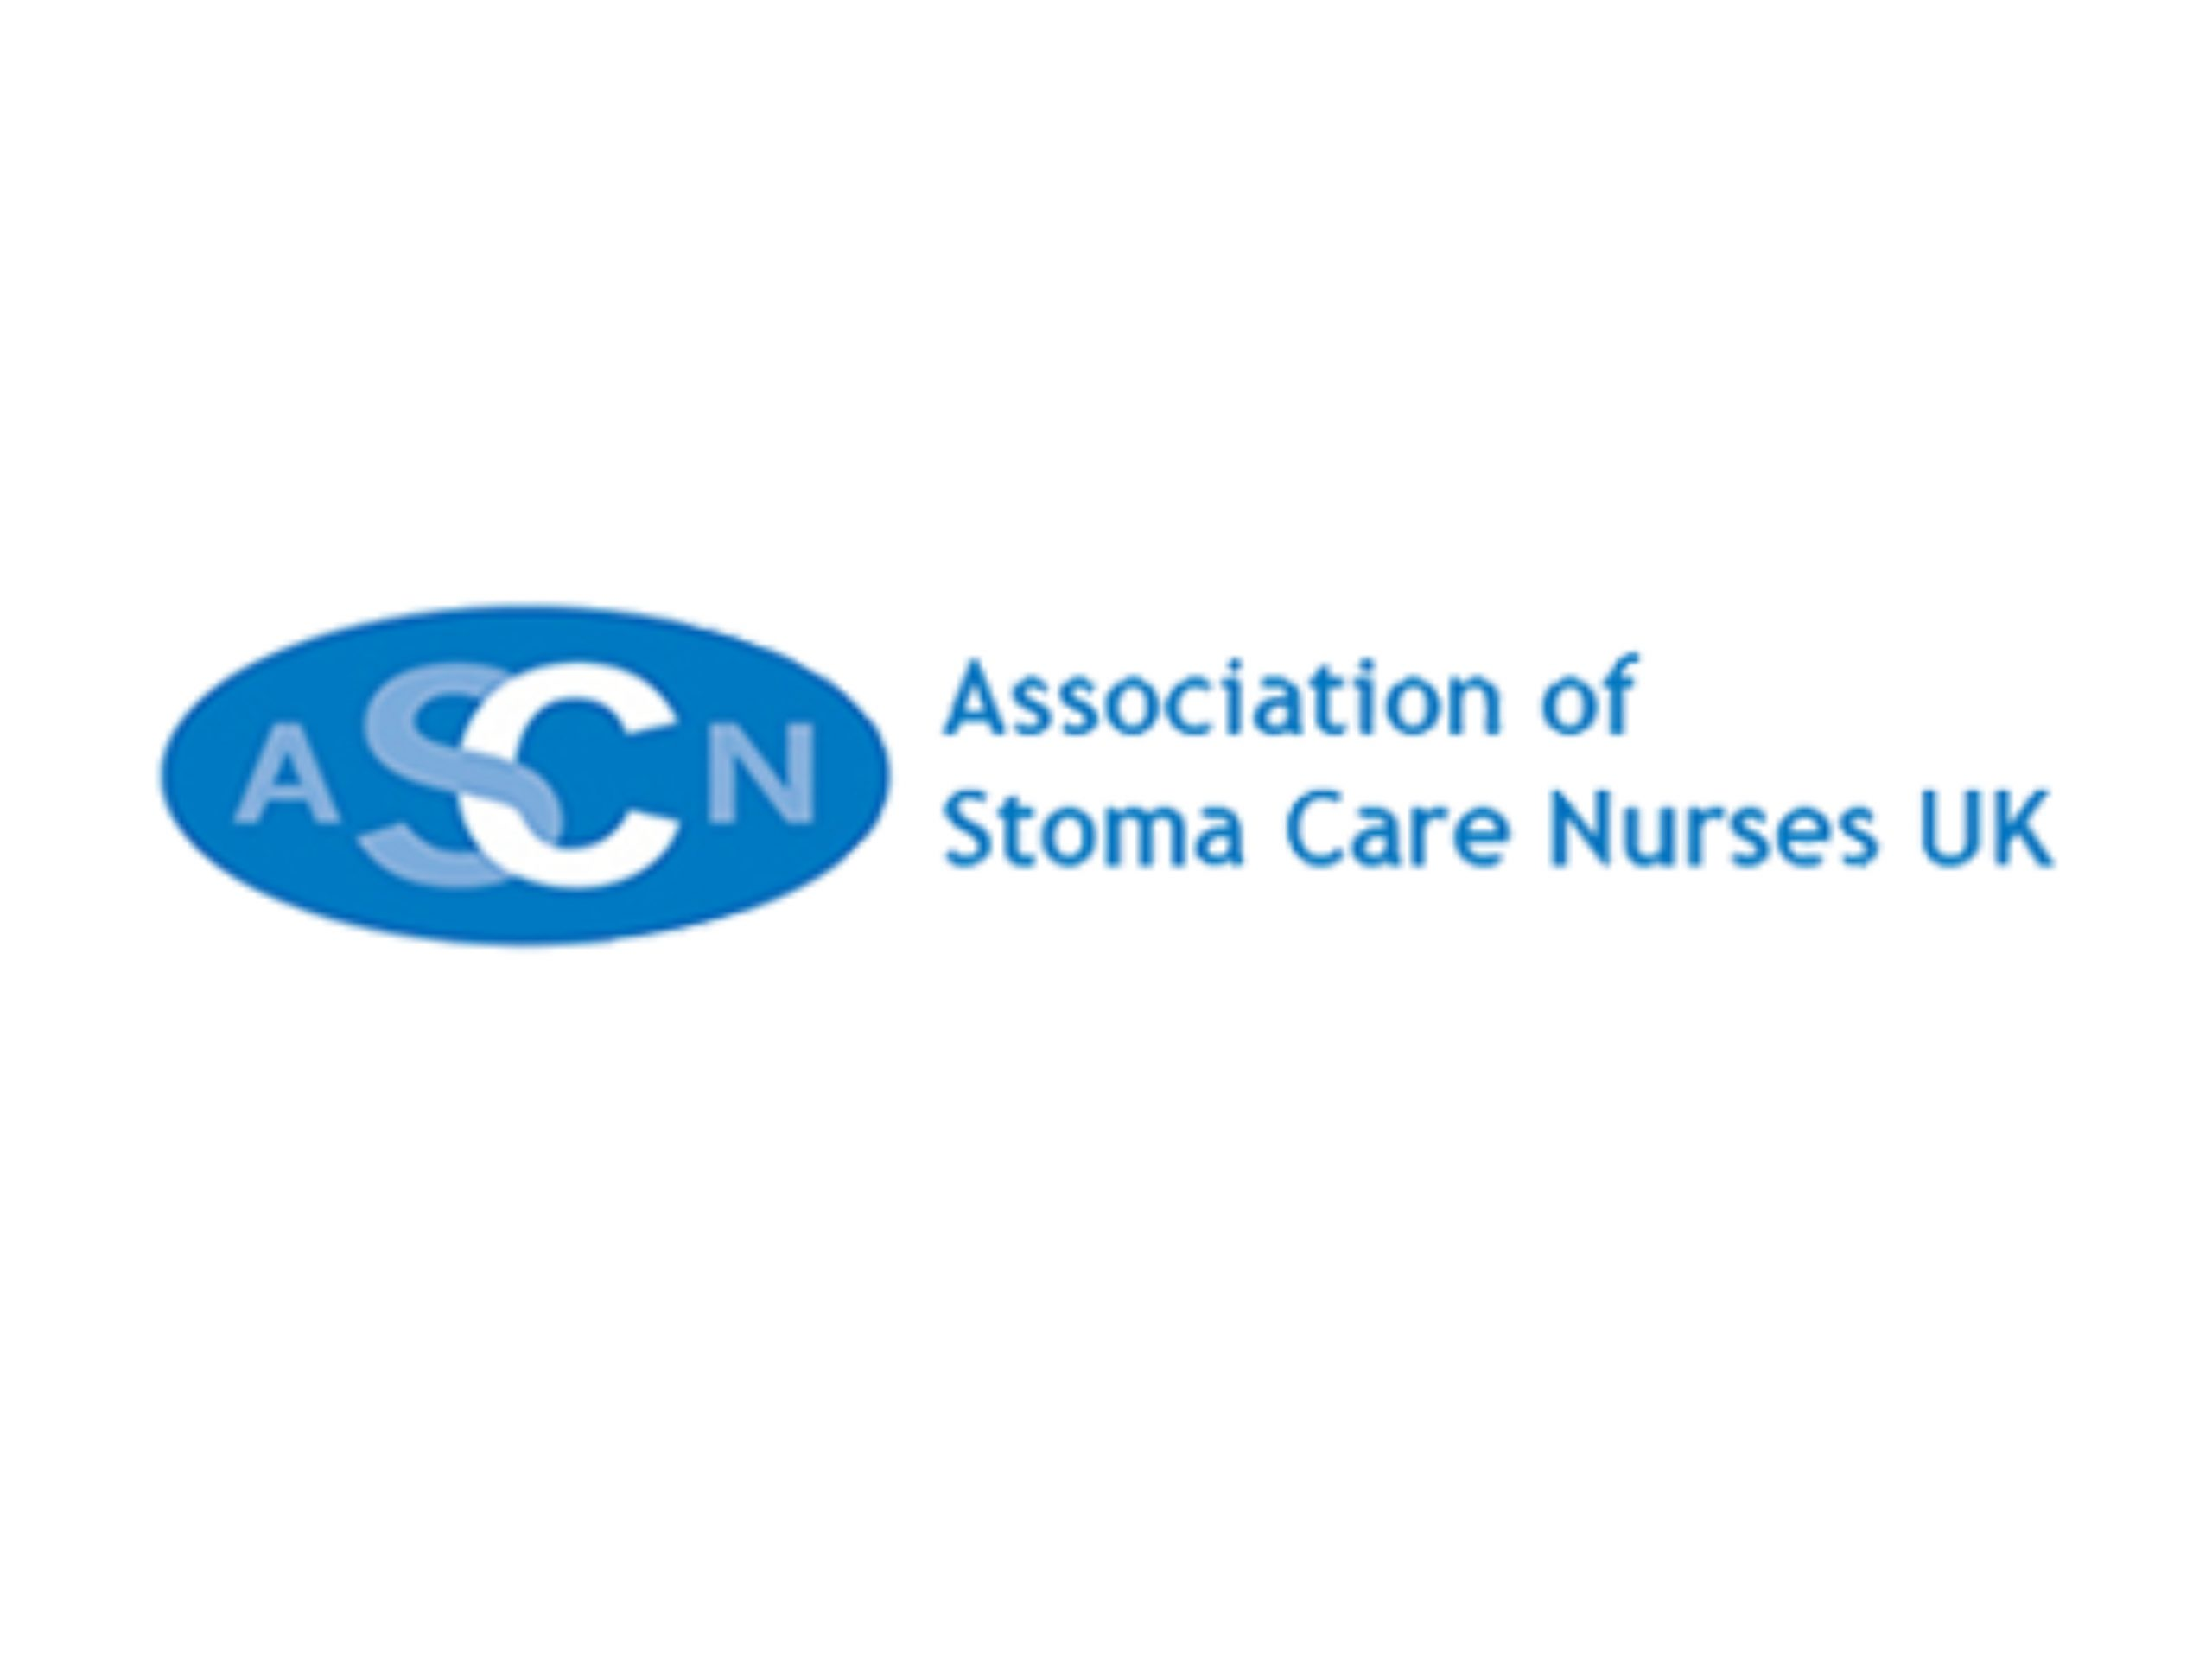 Association of Stoma Care Nurses